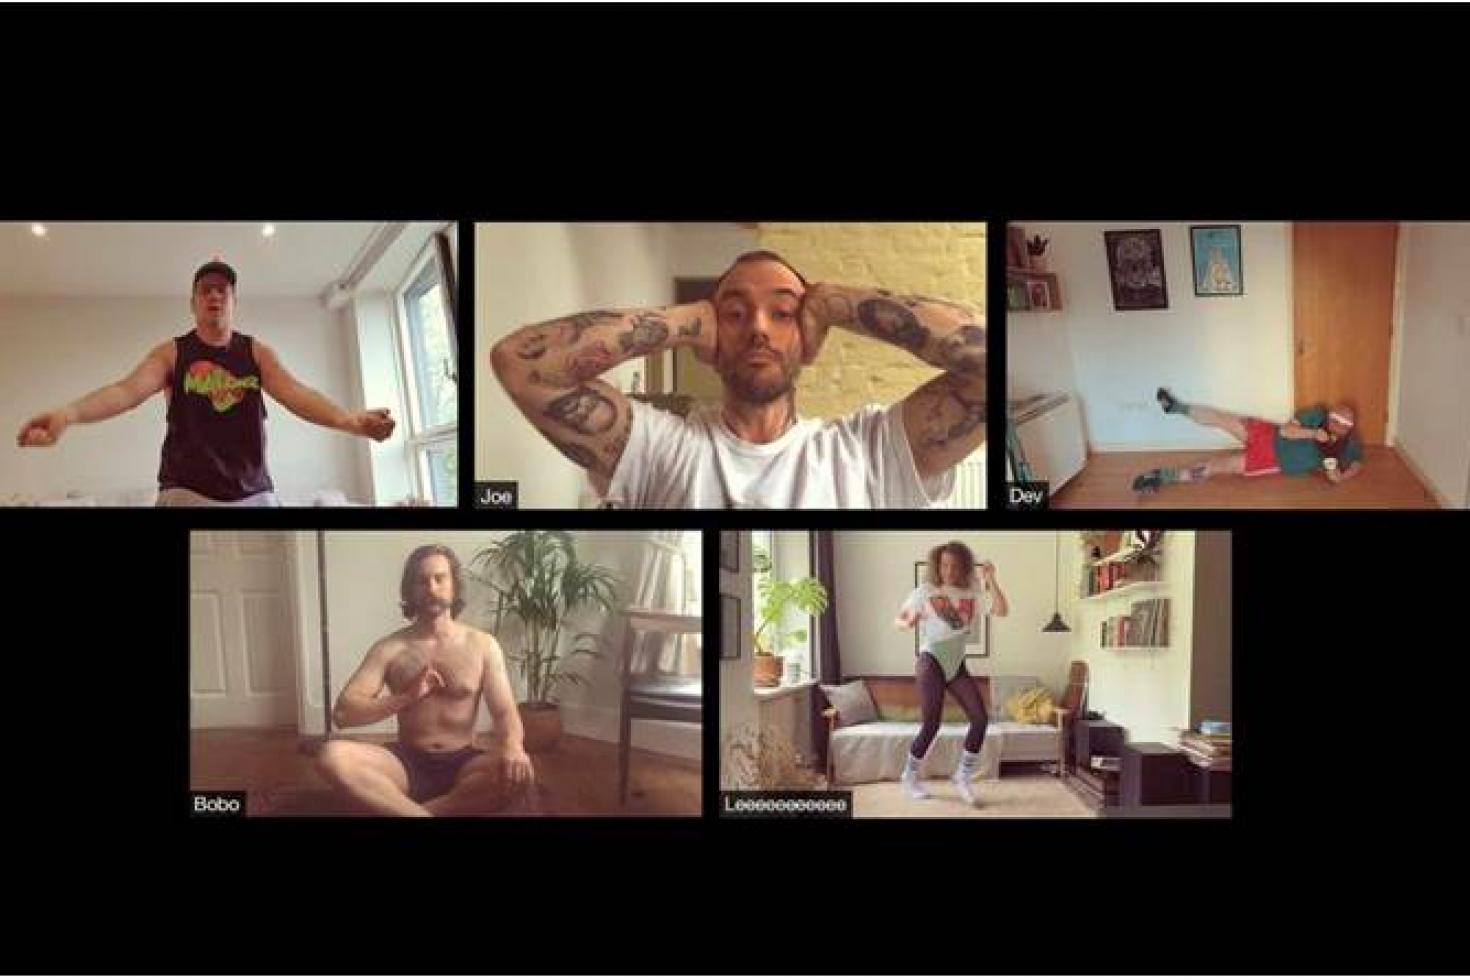 IDLES return with new single and video